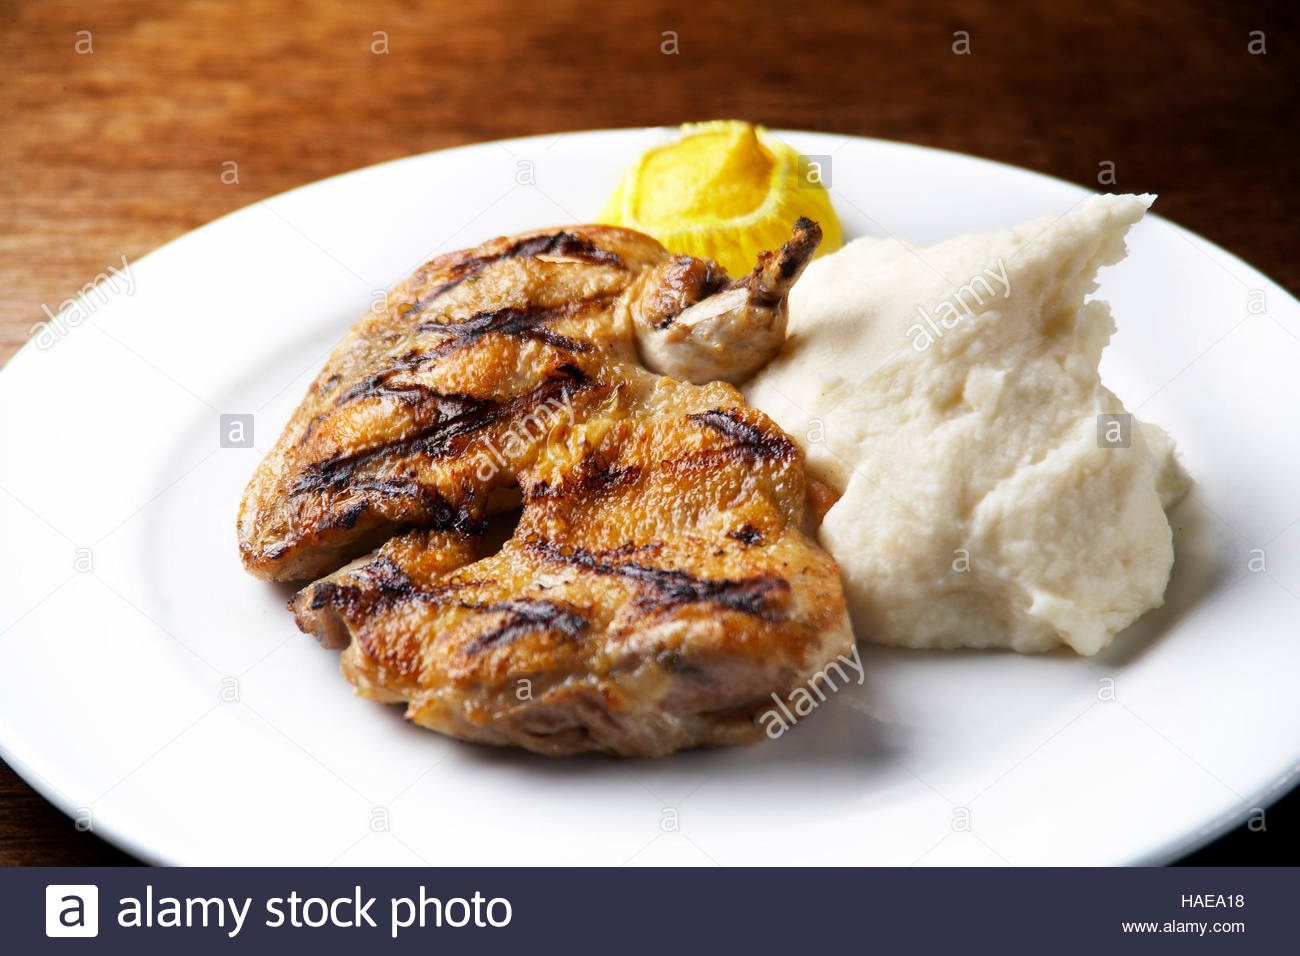 Grilled chicken with mash potatoes - Stock Image